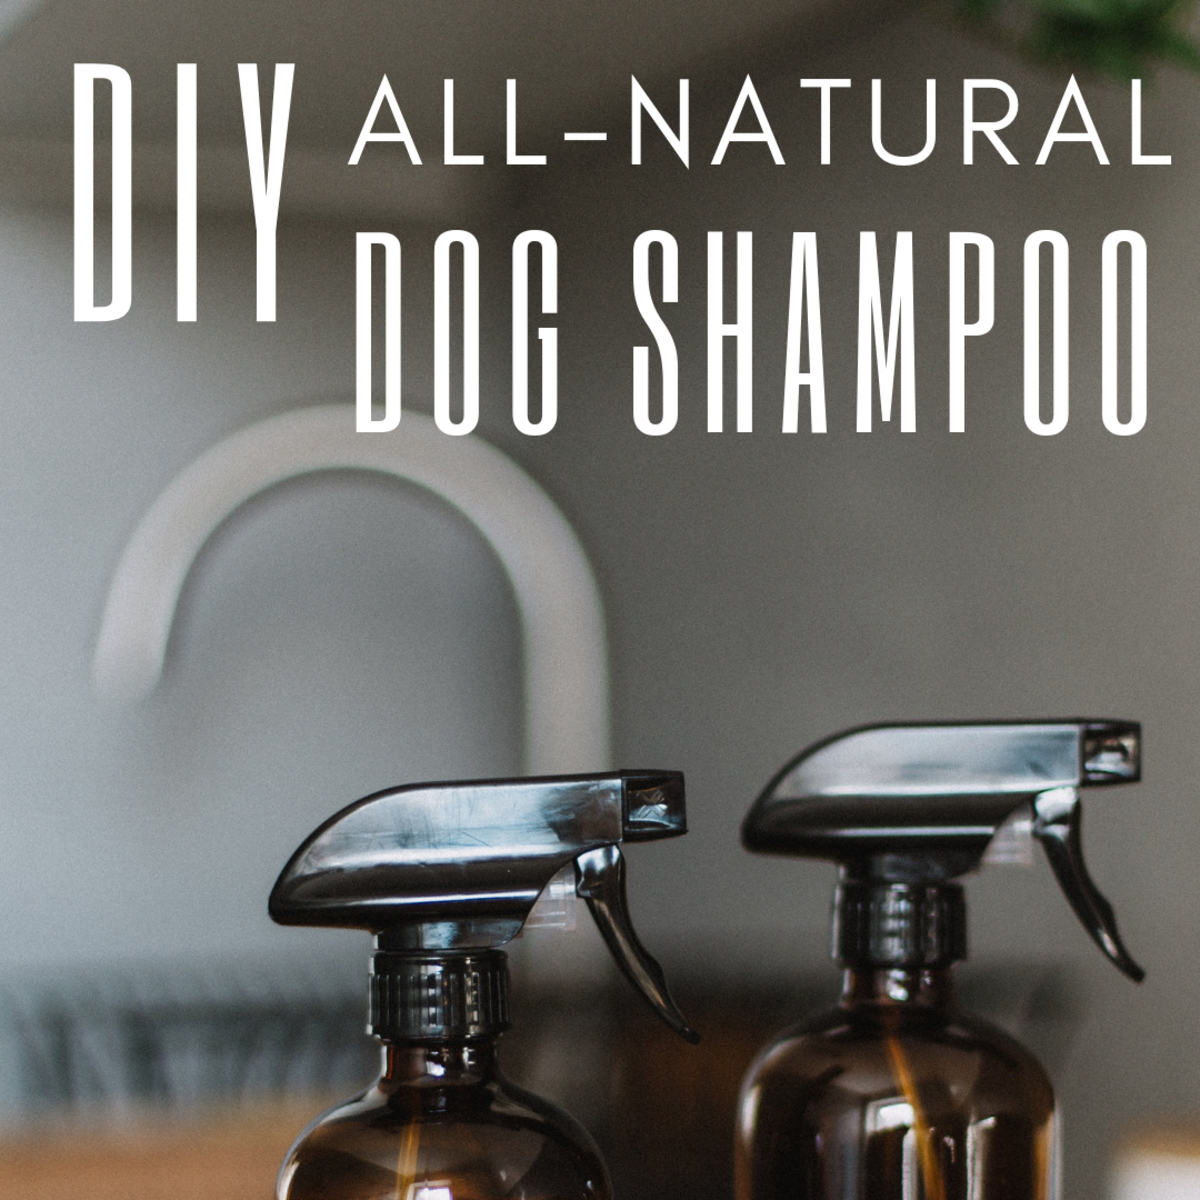 All-Natural Homemade Dog Shampoo Recipe